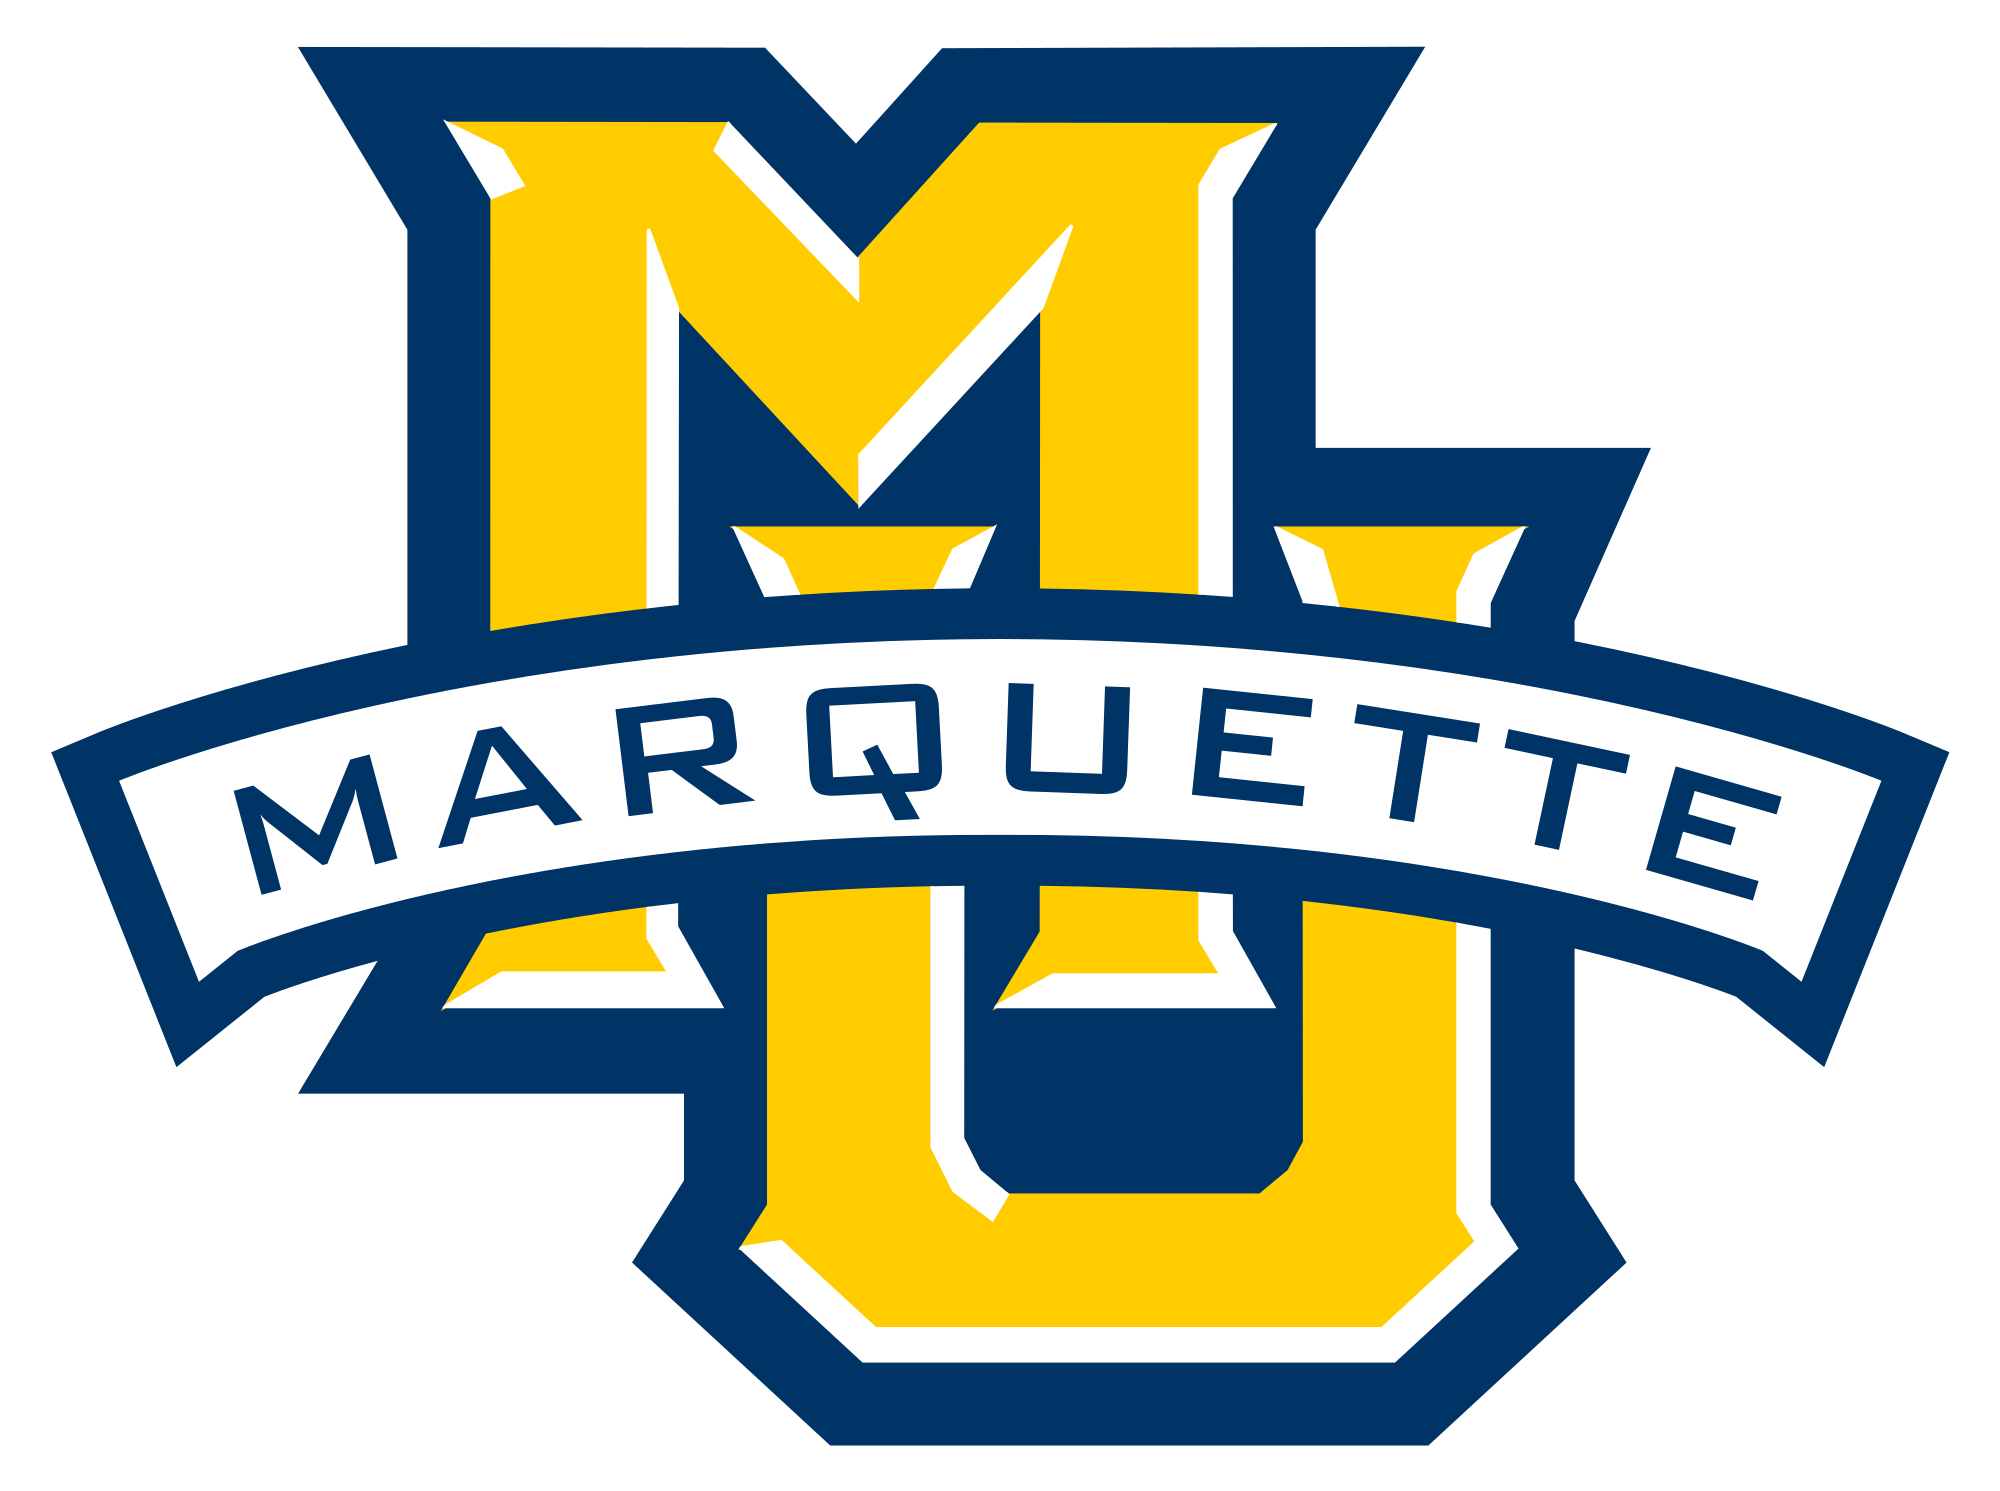 Golden eagles basketball clipart photos vector royalty free download File:Marquette Golden Eagles logo.svg - Wikimedia Commons vector royalty free download